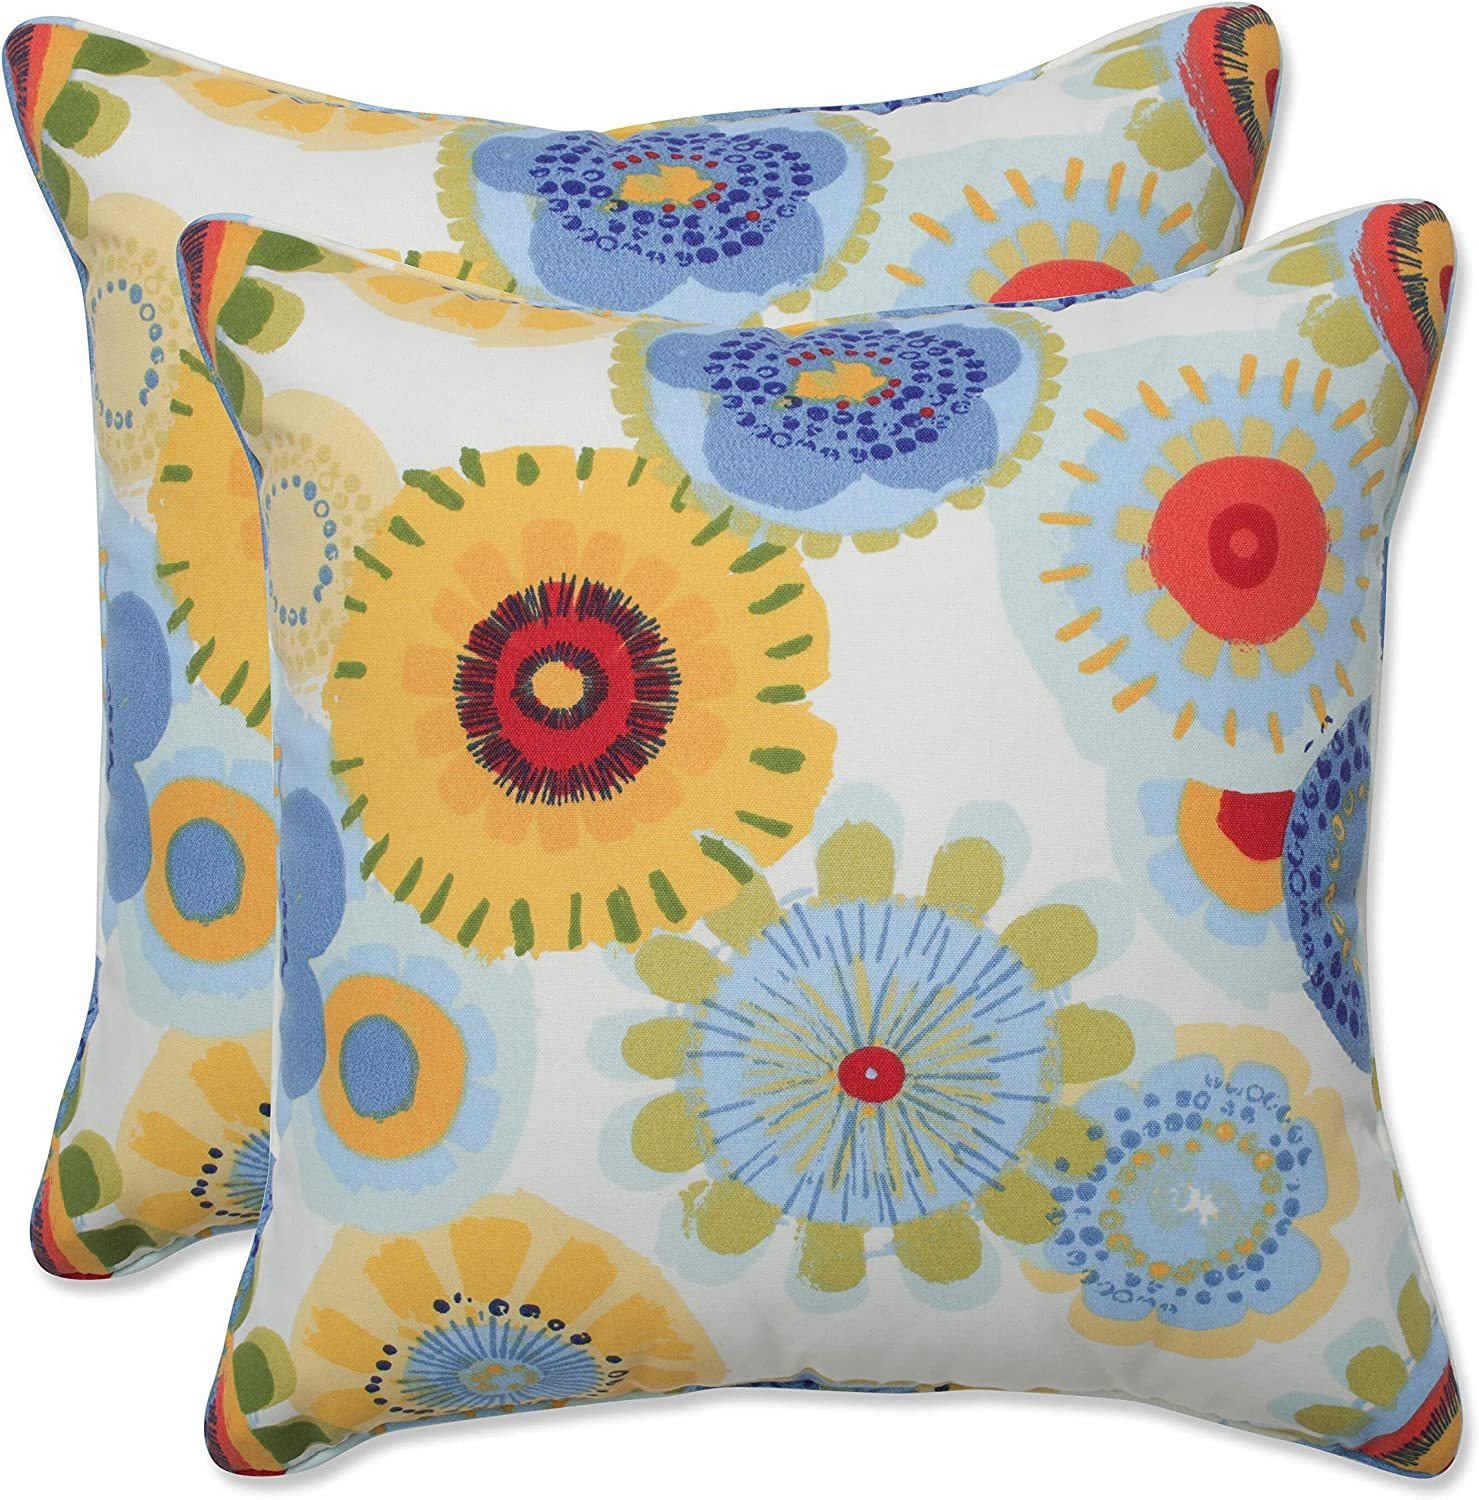 Pillow Perfect 200 Outdoor/Indoor Crosby Confetti Throw Pillows, 200.200